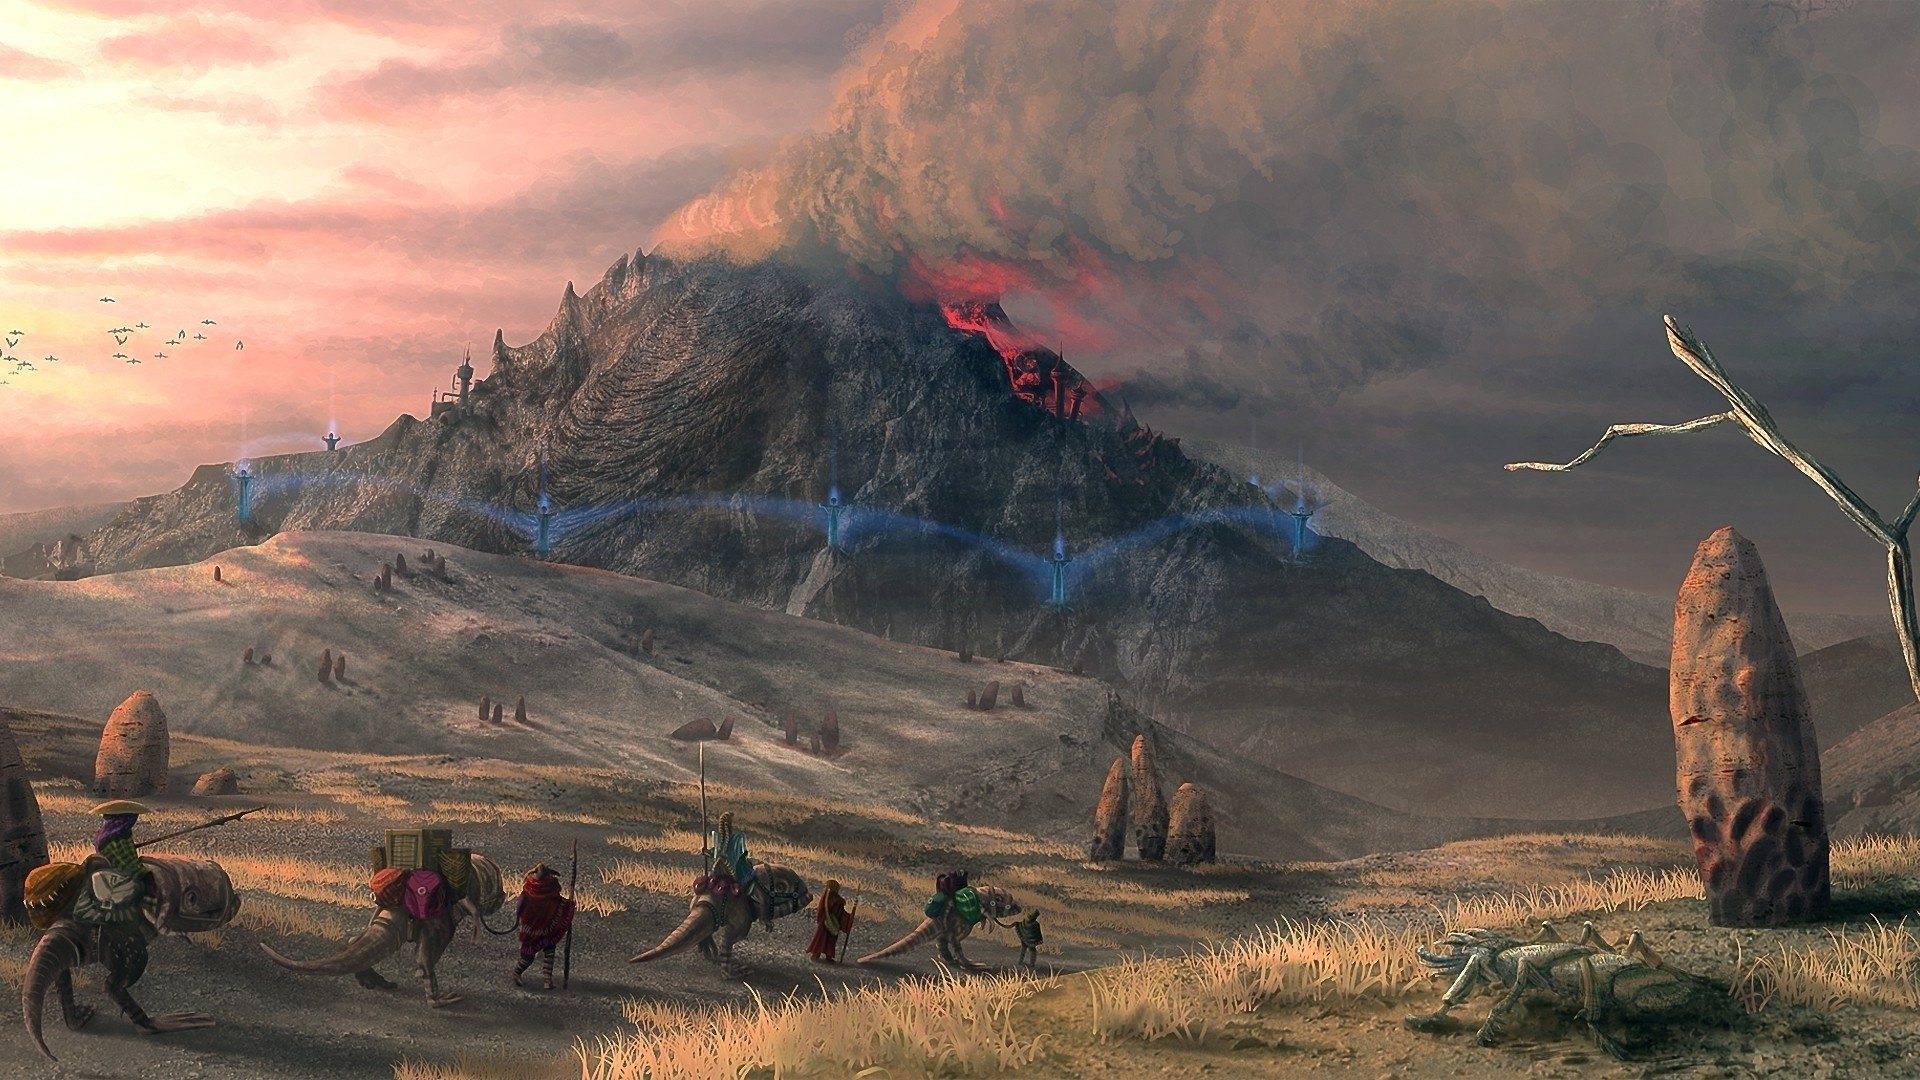 The Elder Scrolls Wallpaper: The Elder Scrolls III: Morrowind HD Wallpaper